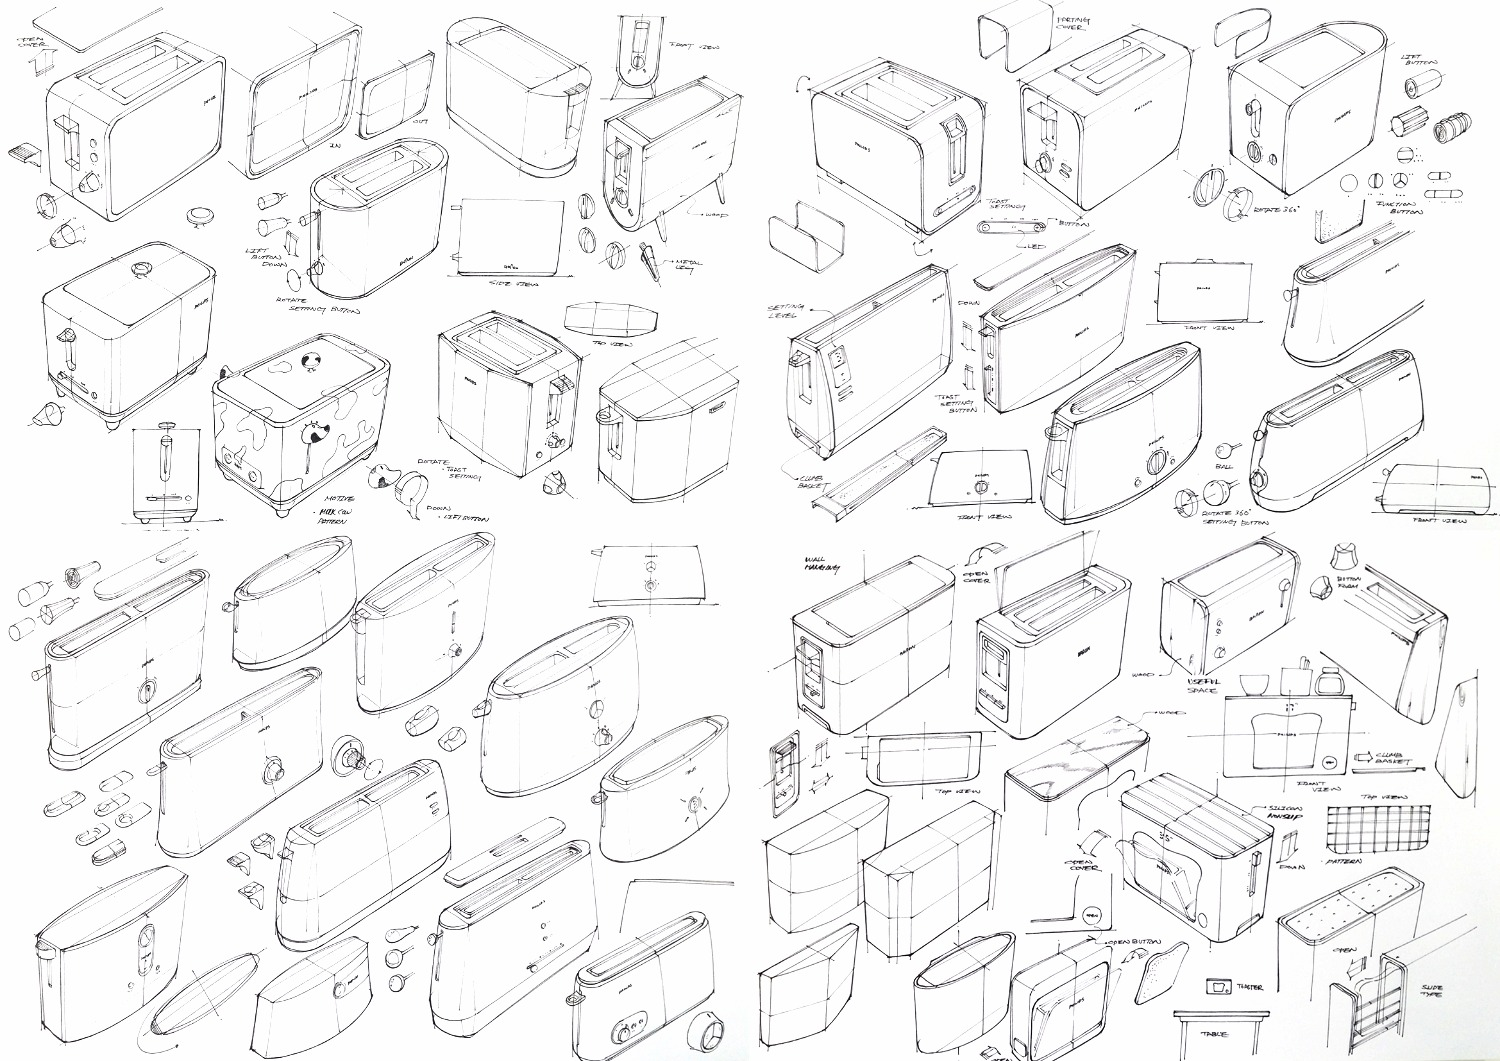 Toaster design sketch